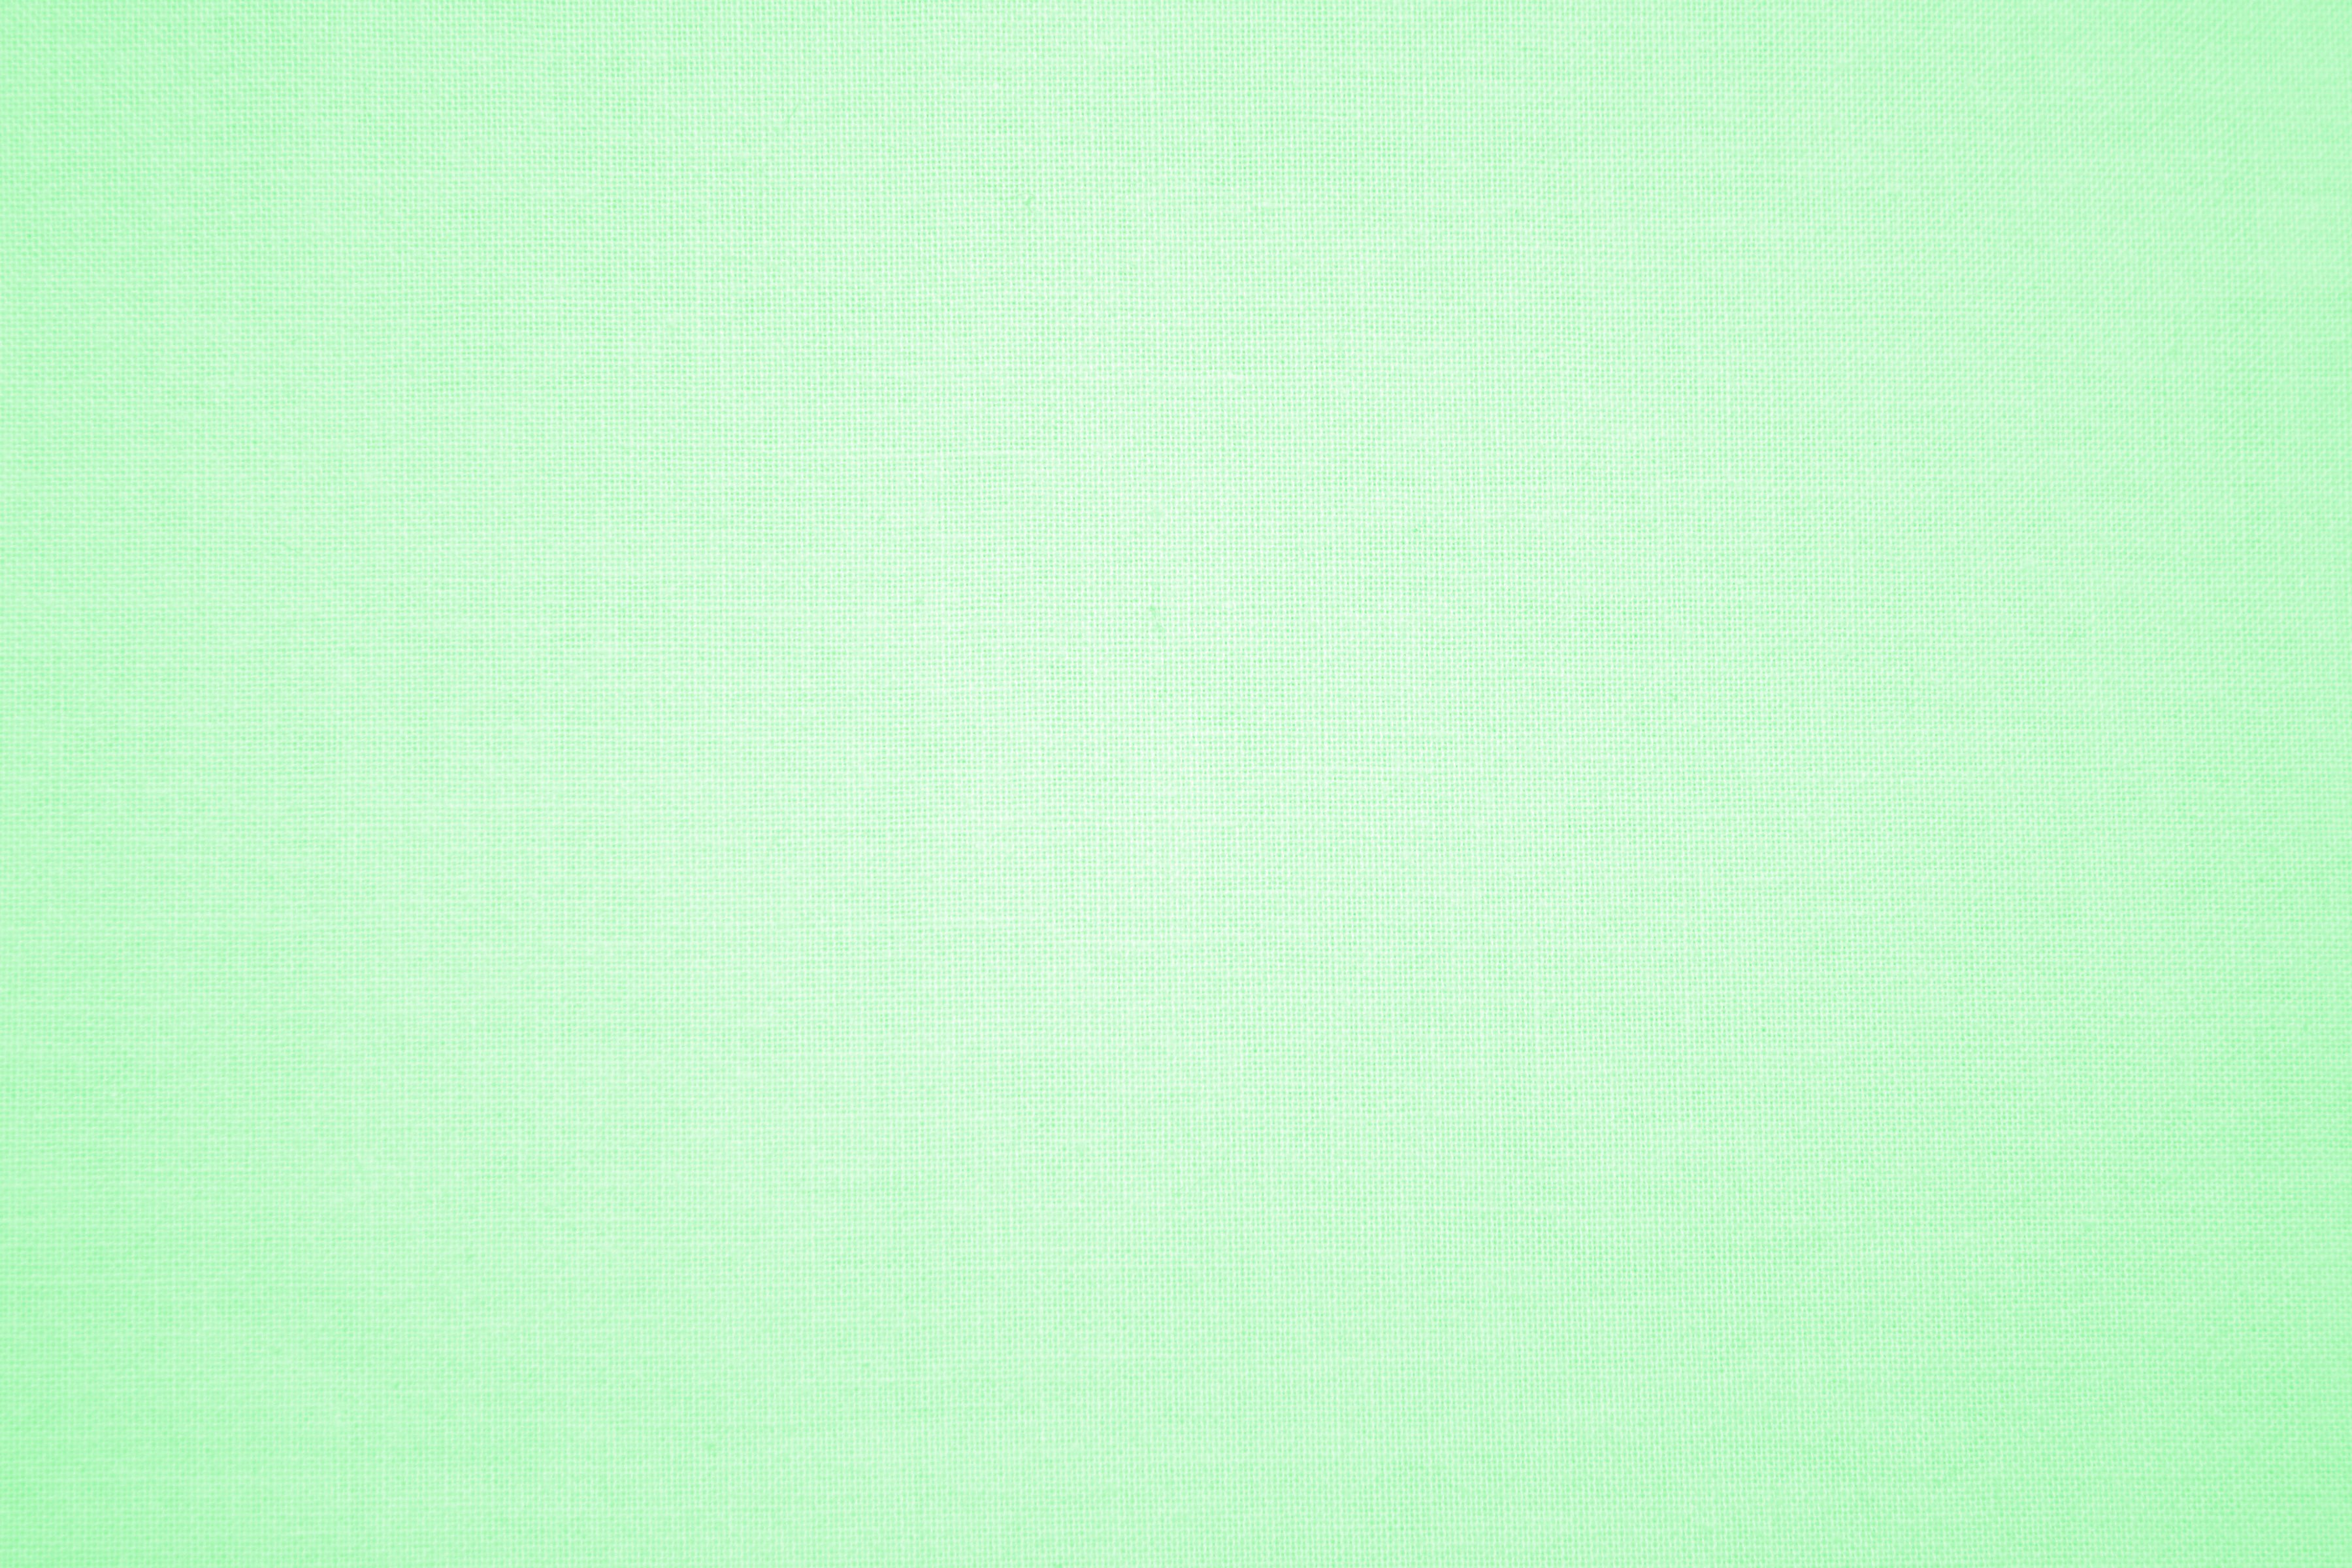 Pastel green canvas fabric texture picture free for Pastel galaxy fabric